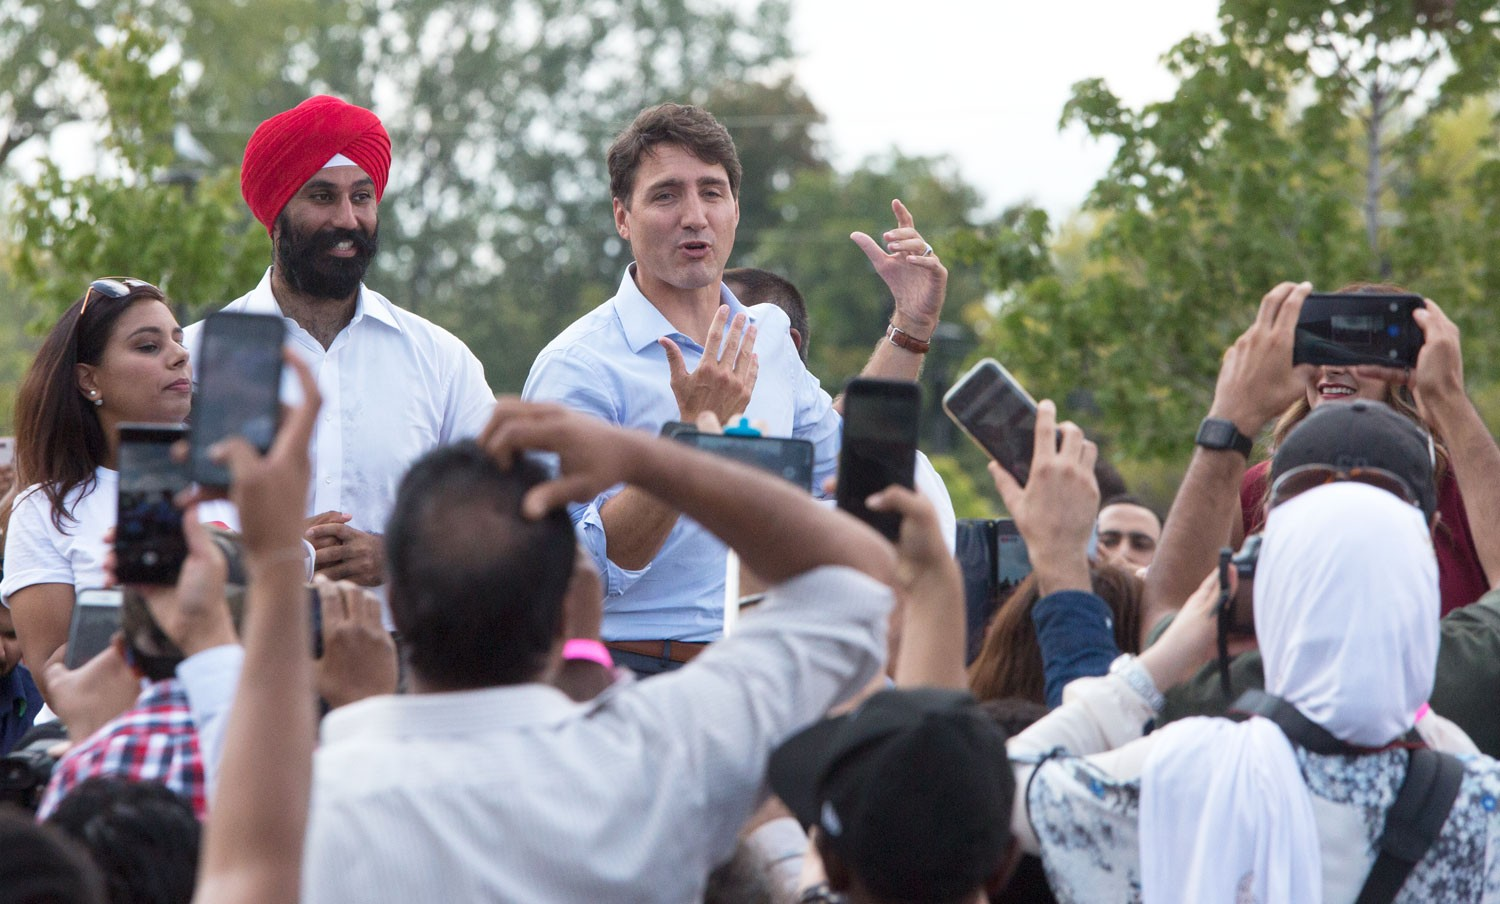 As Trudeau announces plan for 350,000 immigrants a year, Brampton MP says 'buck stops at council' to fund growth